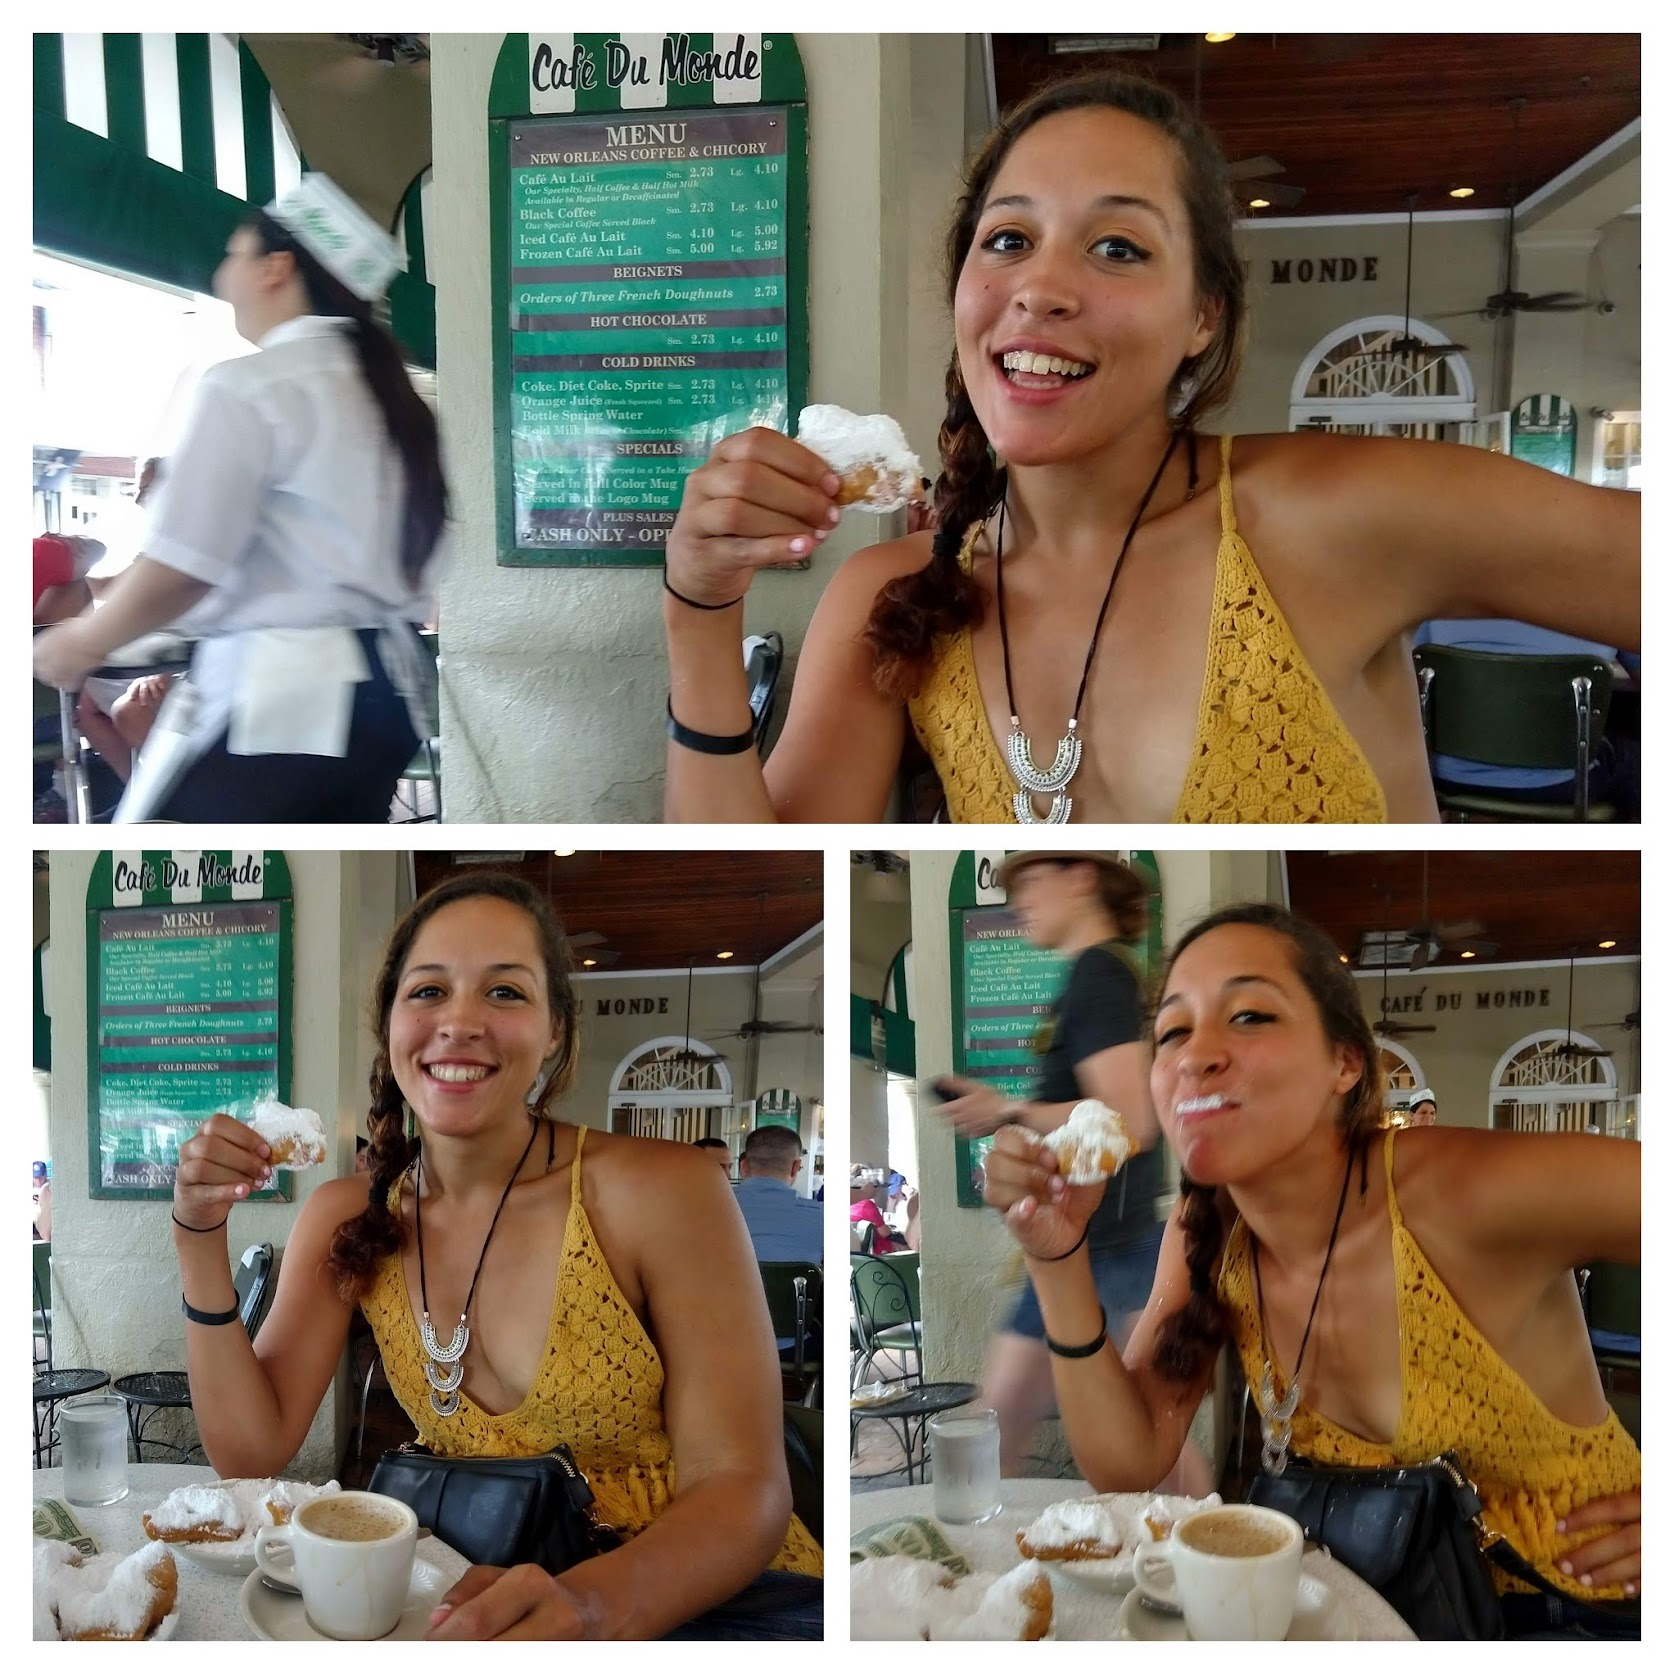 Sarah Fay eating beignets in New Orleans at Cafe Du Monde.